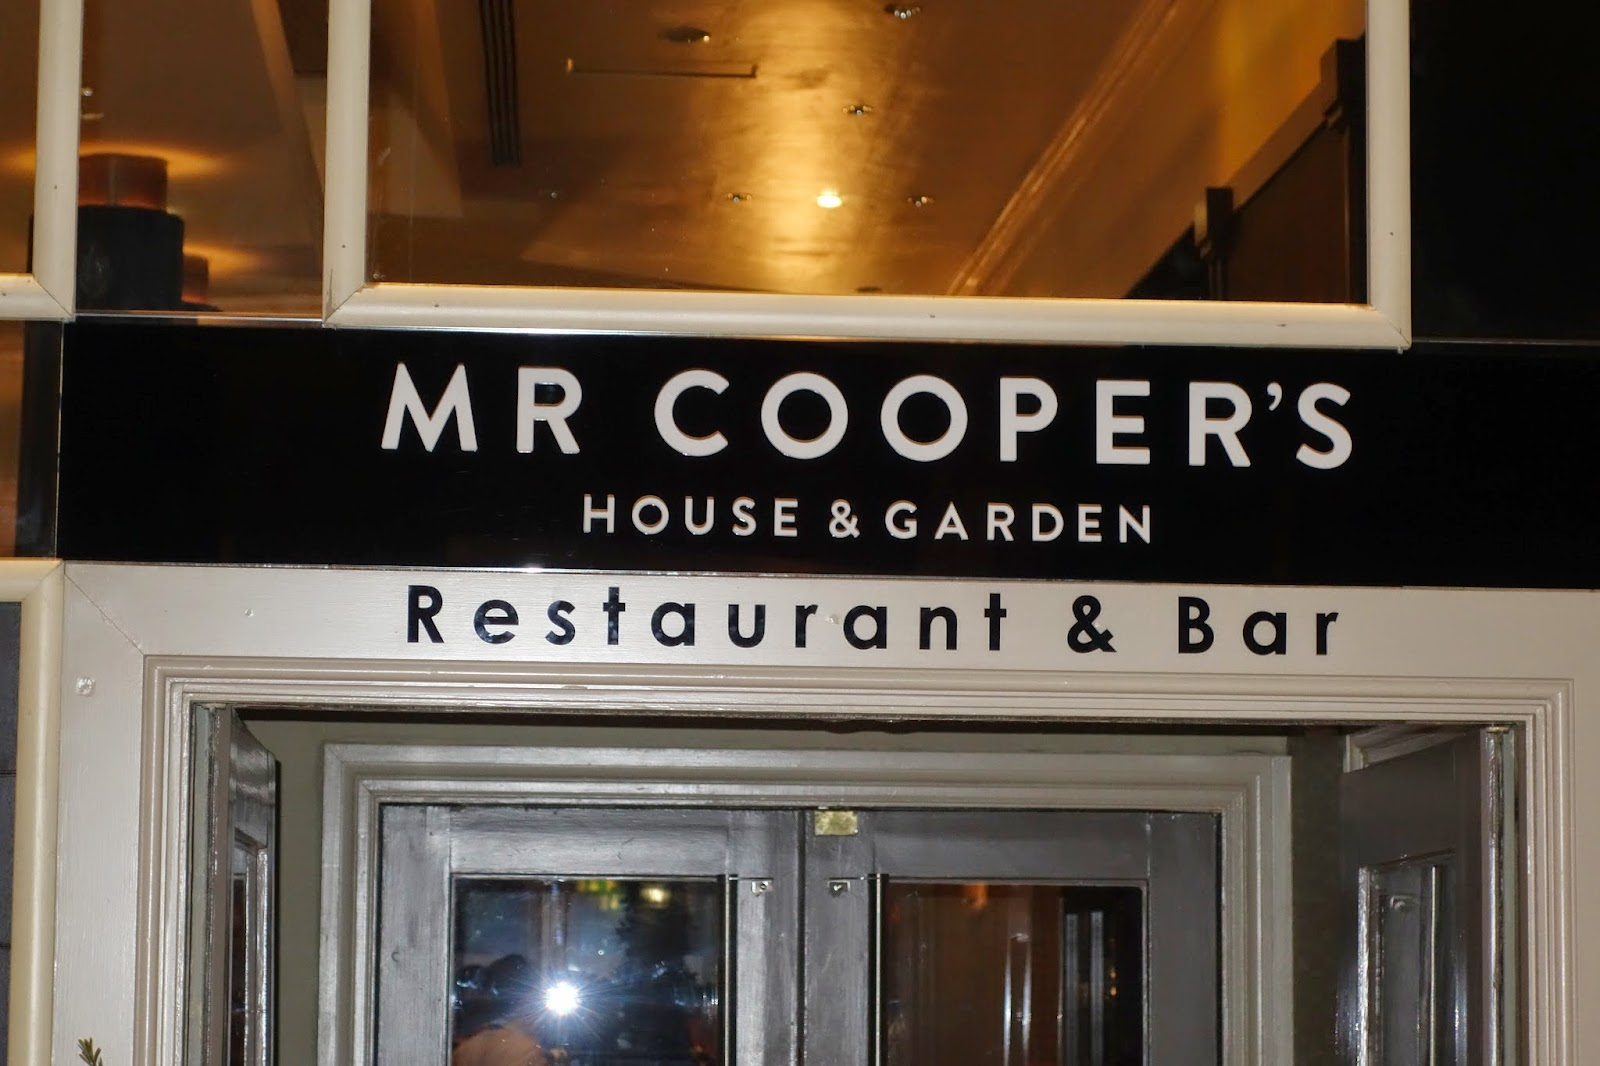 Mr Cooper's House and Garden